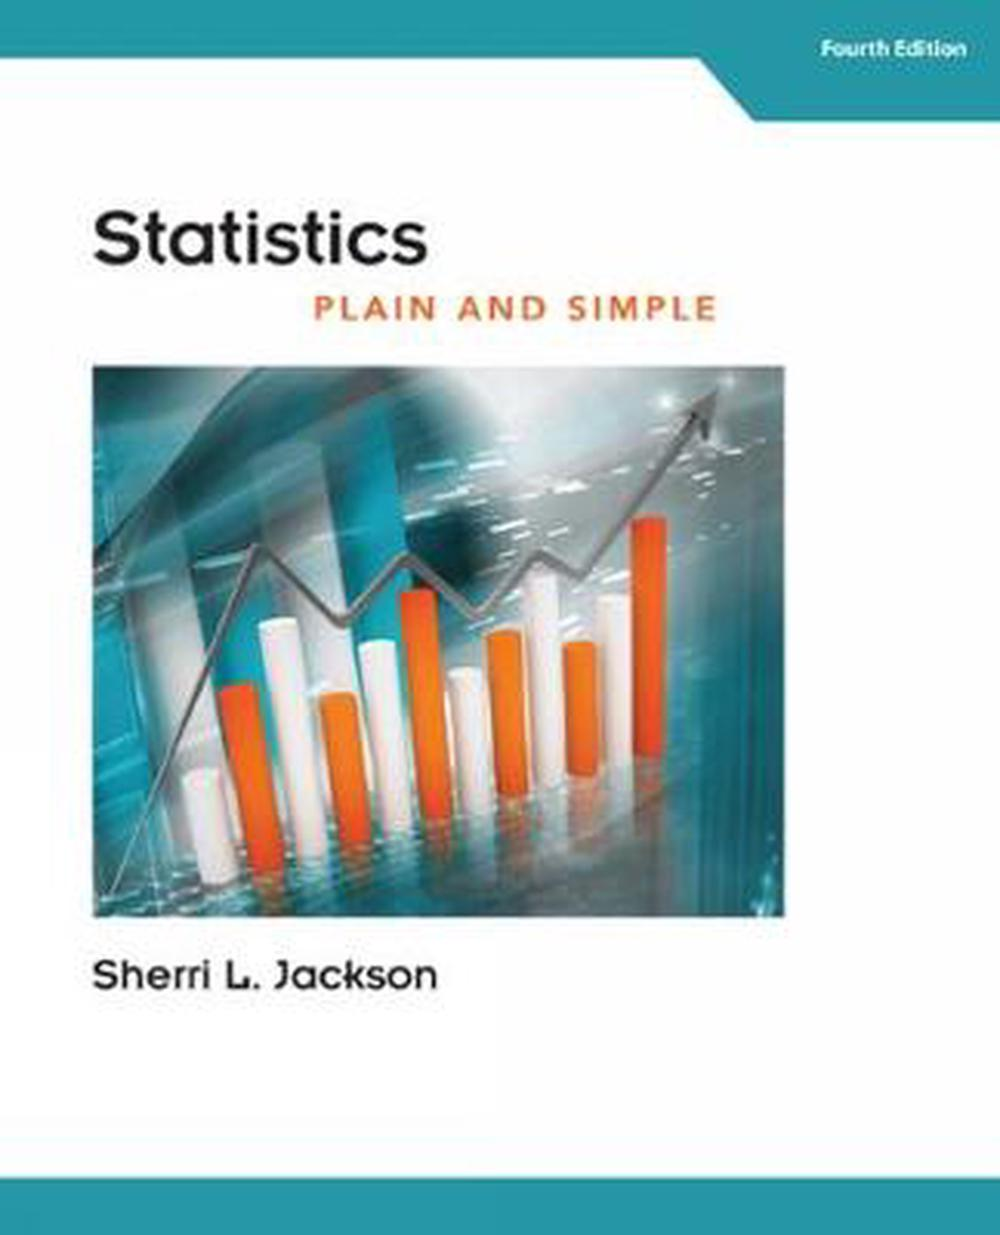 research methods and statistics a critical thinking approach by sherri jackson Sherri l jackson is professor of psychology at jacksonville university (ju), where she has taught since 1988 and the text research methods and statistics is very beneficial if you are in a course that requires this specific text one of the problems i have found with psychology books is that they do.